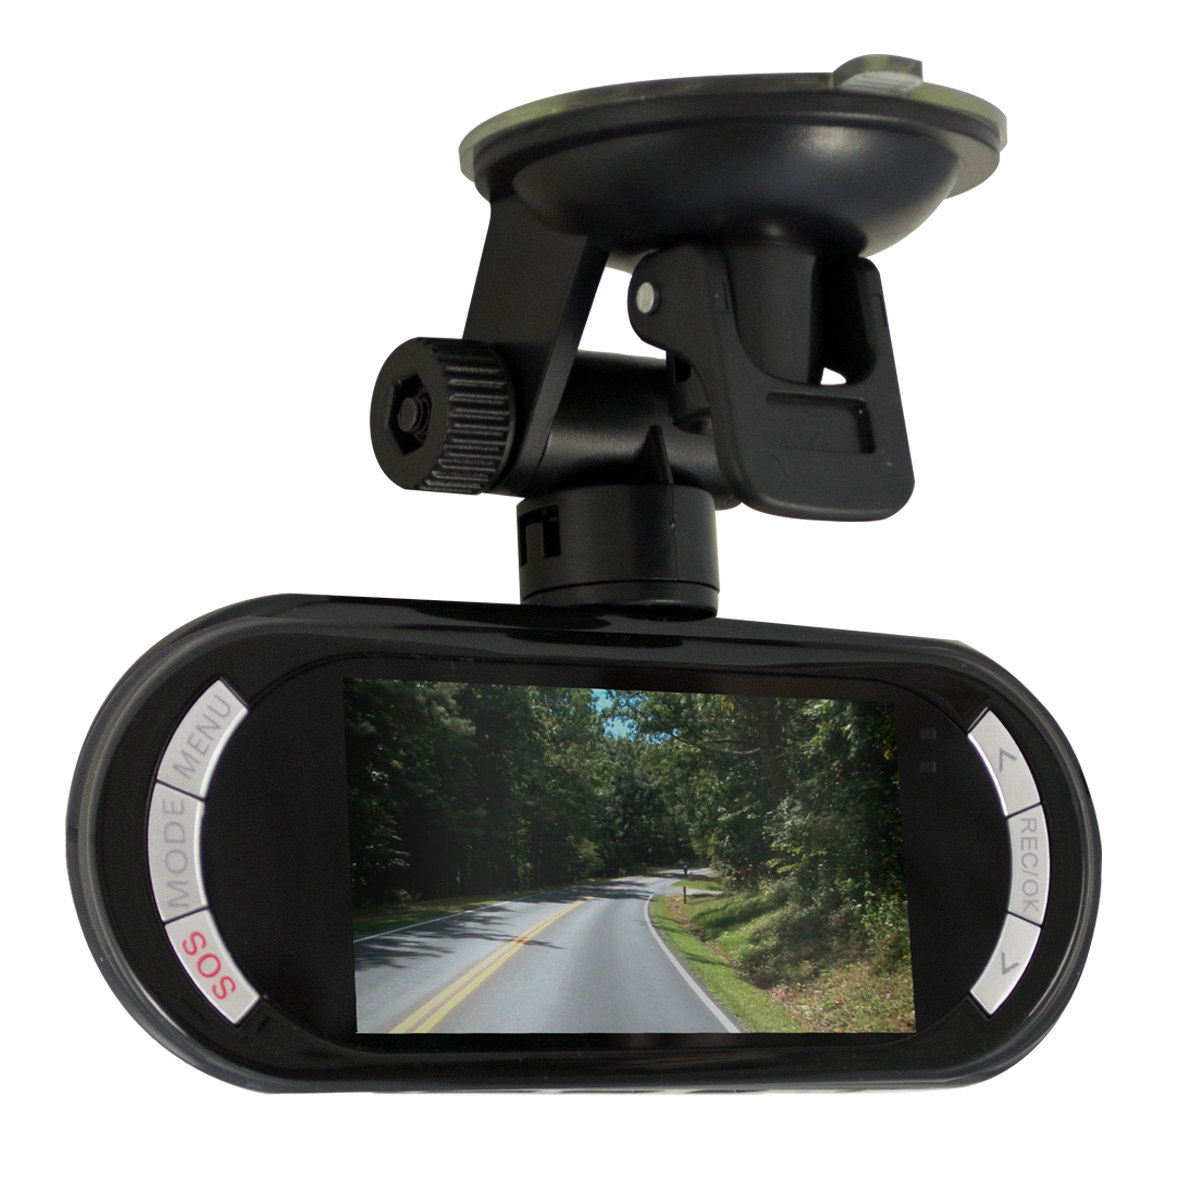 Portable DVR Cars TFT display, 5Mp, 4 LED, H264, G-Sensor, Novatek CPU